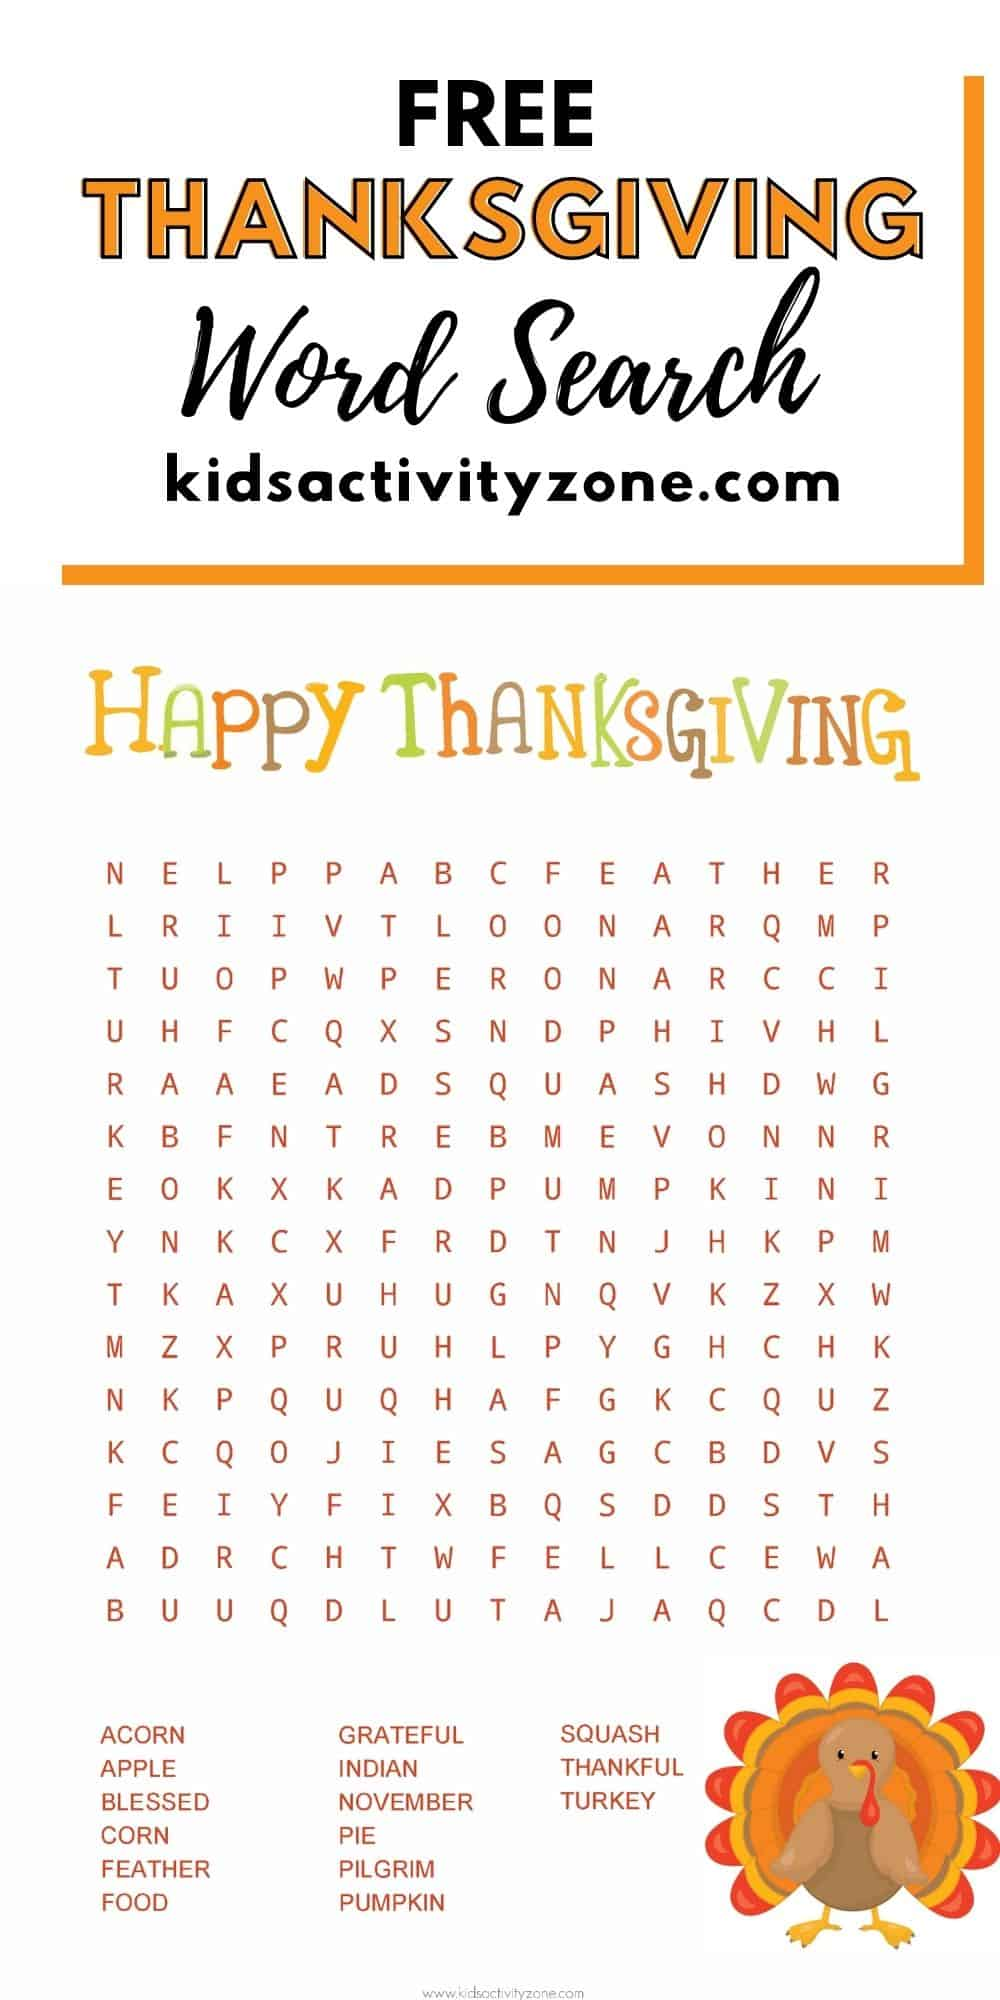 Thanksgiving Word Find Printable is the perfect fun, easy entertainment for Thanksgiving. Great addition to family gatherings to enjoy while the turkey roasts or after you eat. It would be a great addition to any classroom parties too!